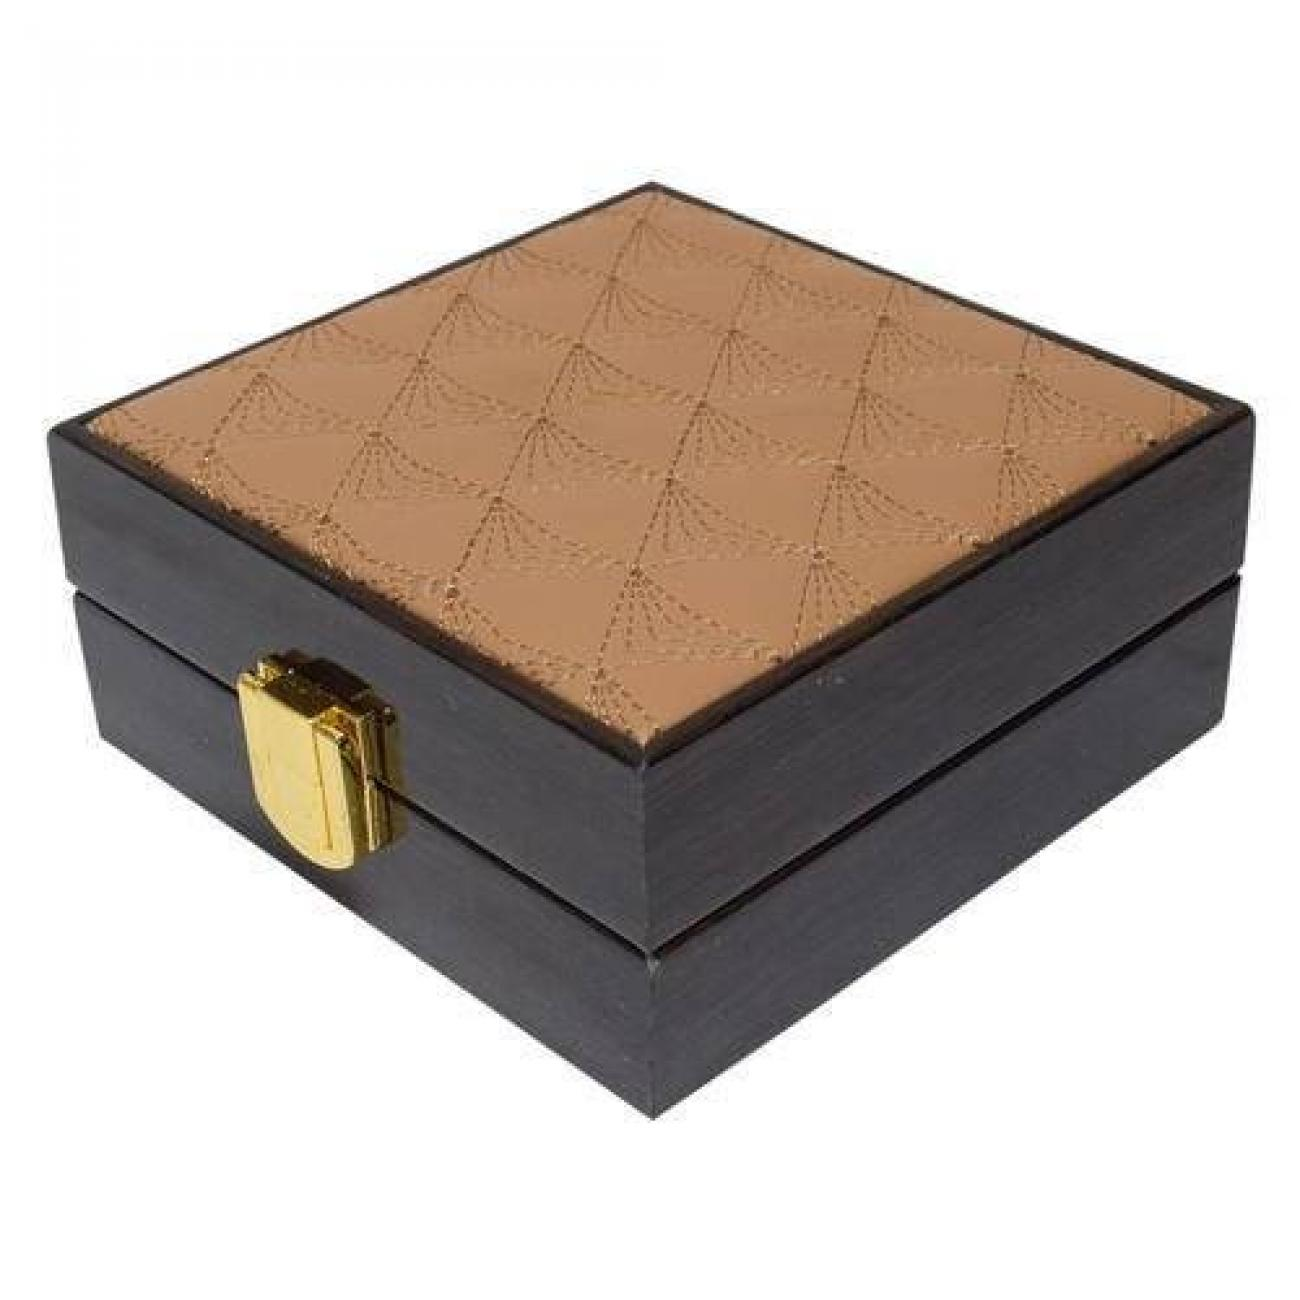 LED_Jewellery_Boxes